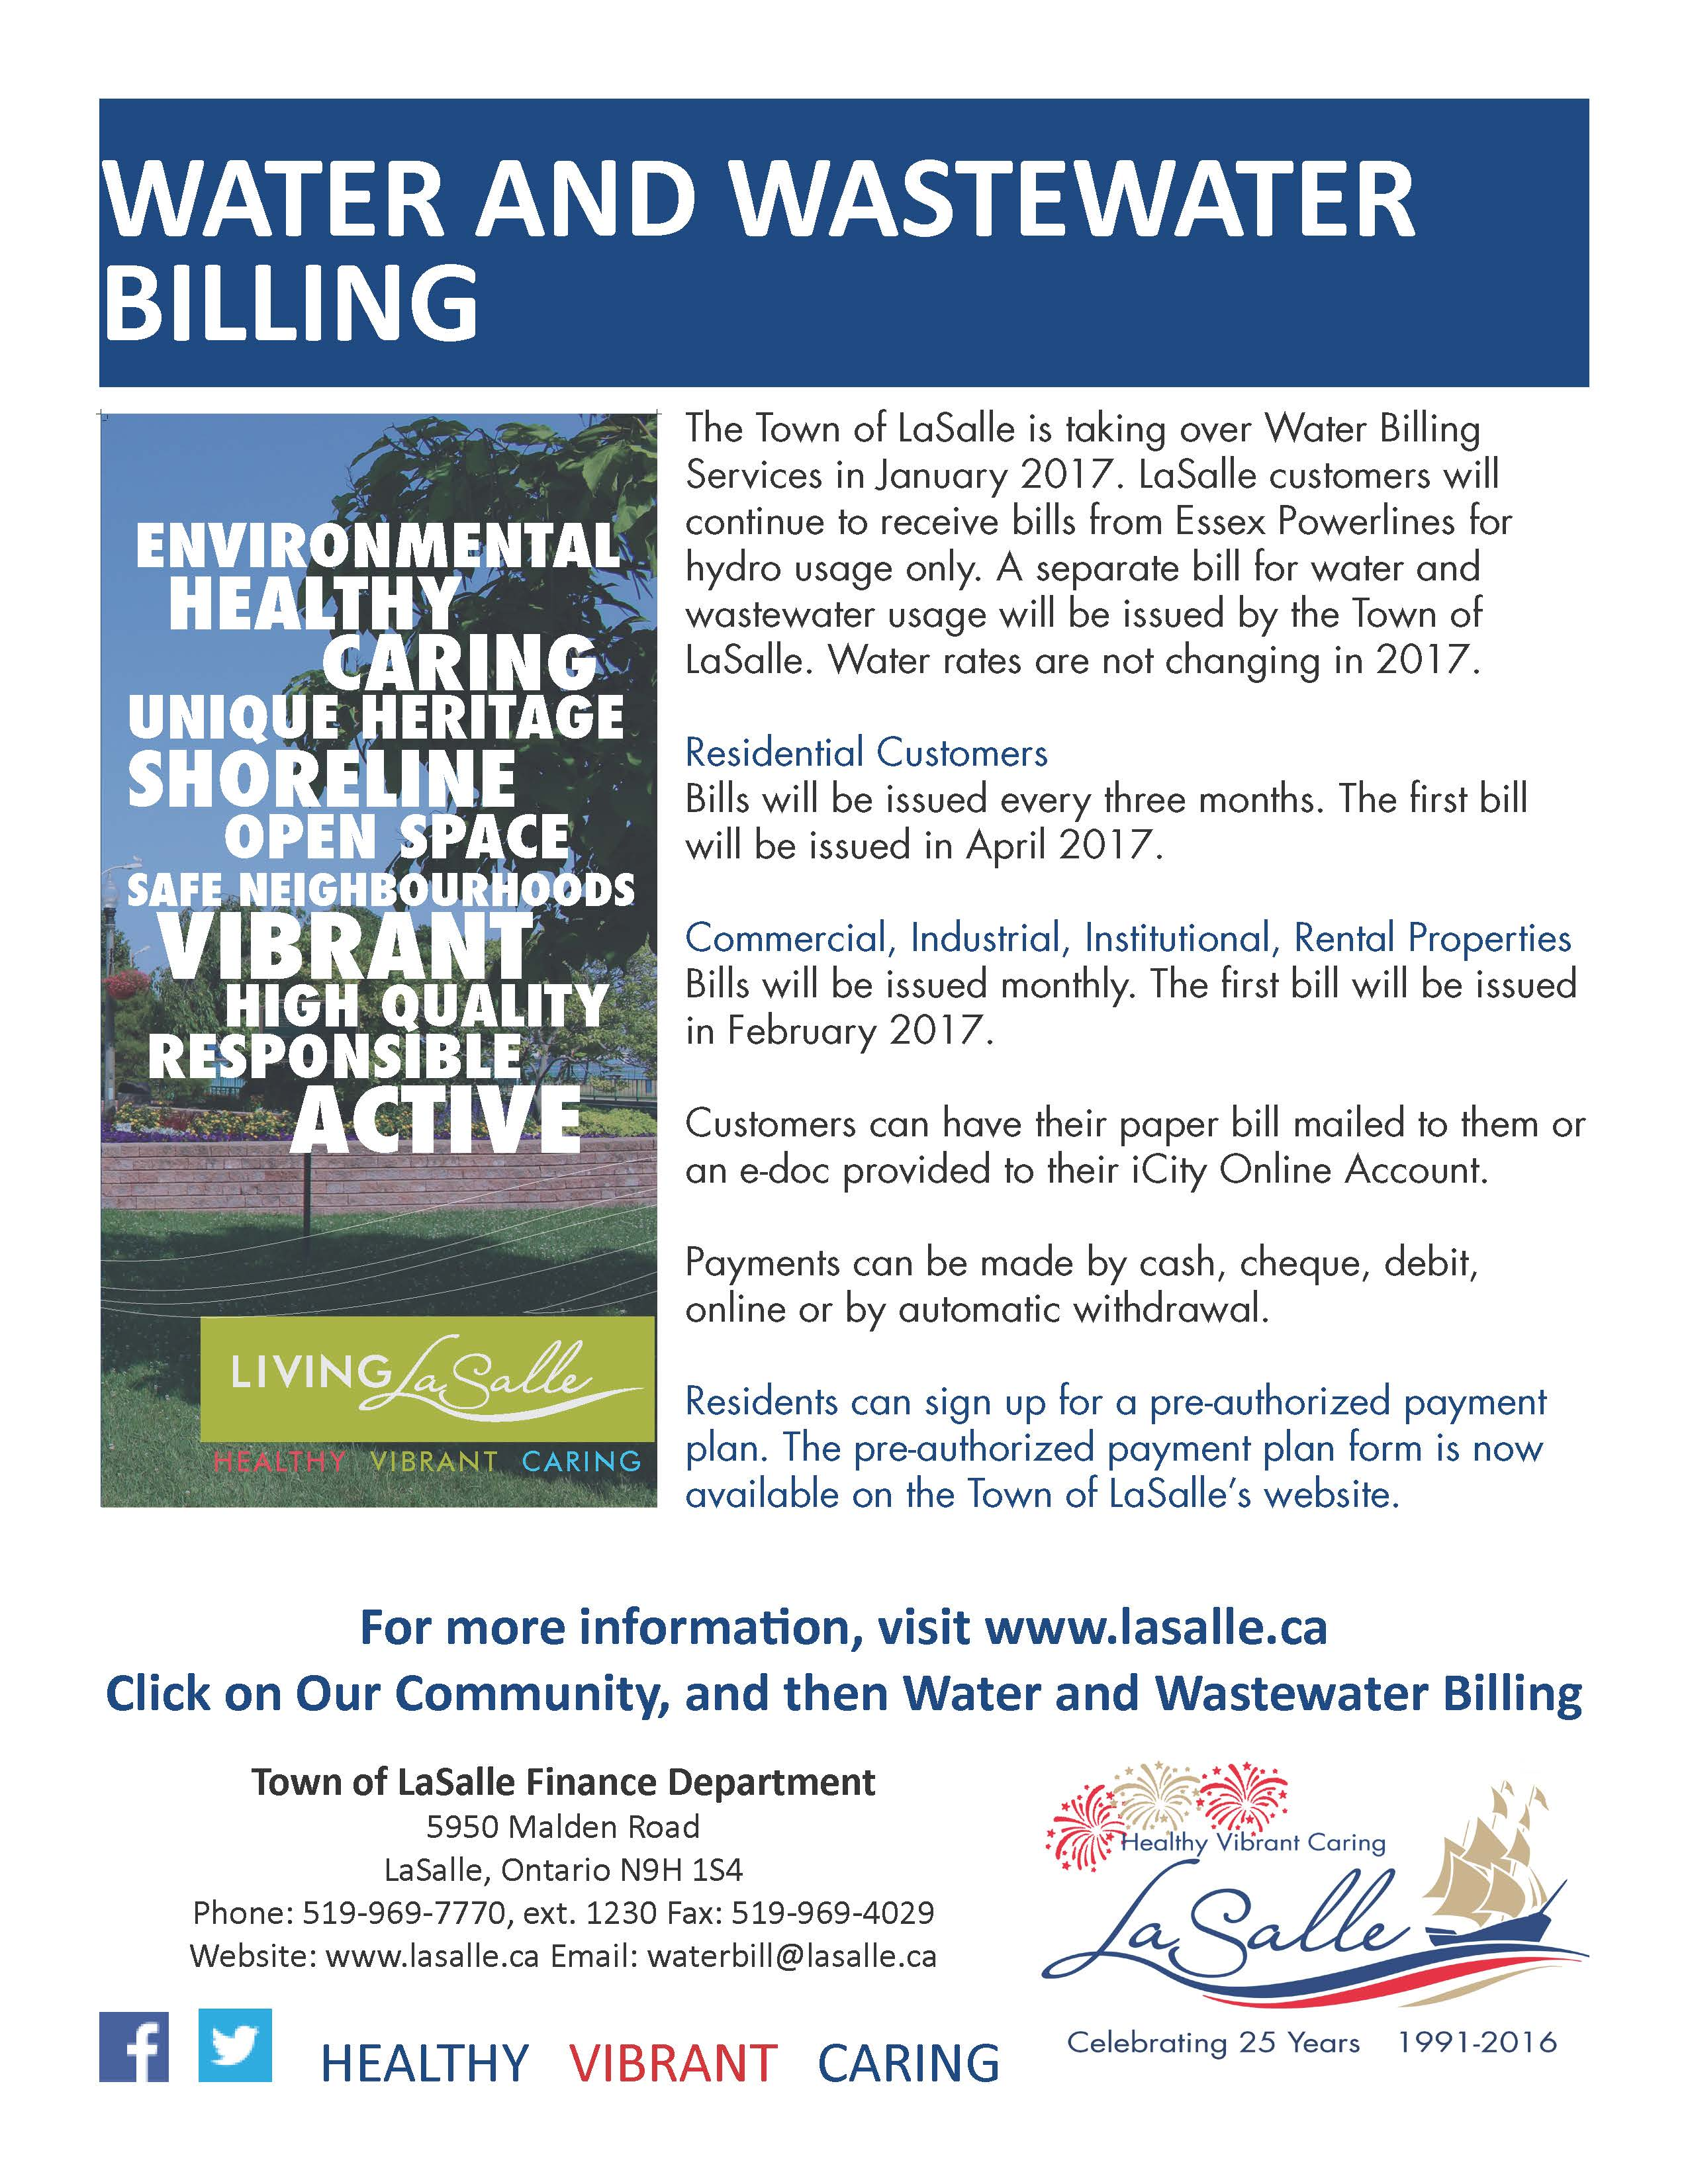 Water and Wastewater Billing Flyer